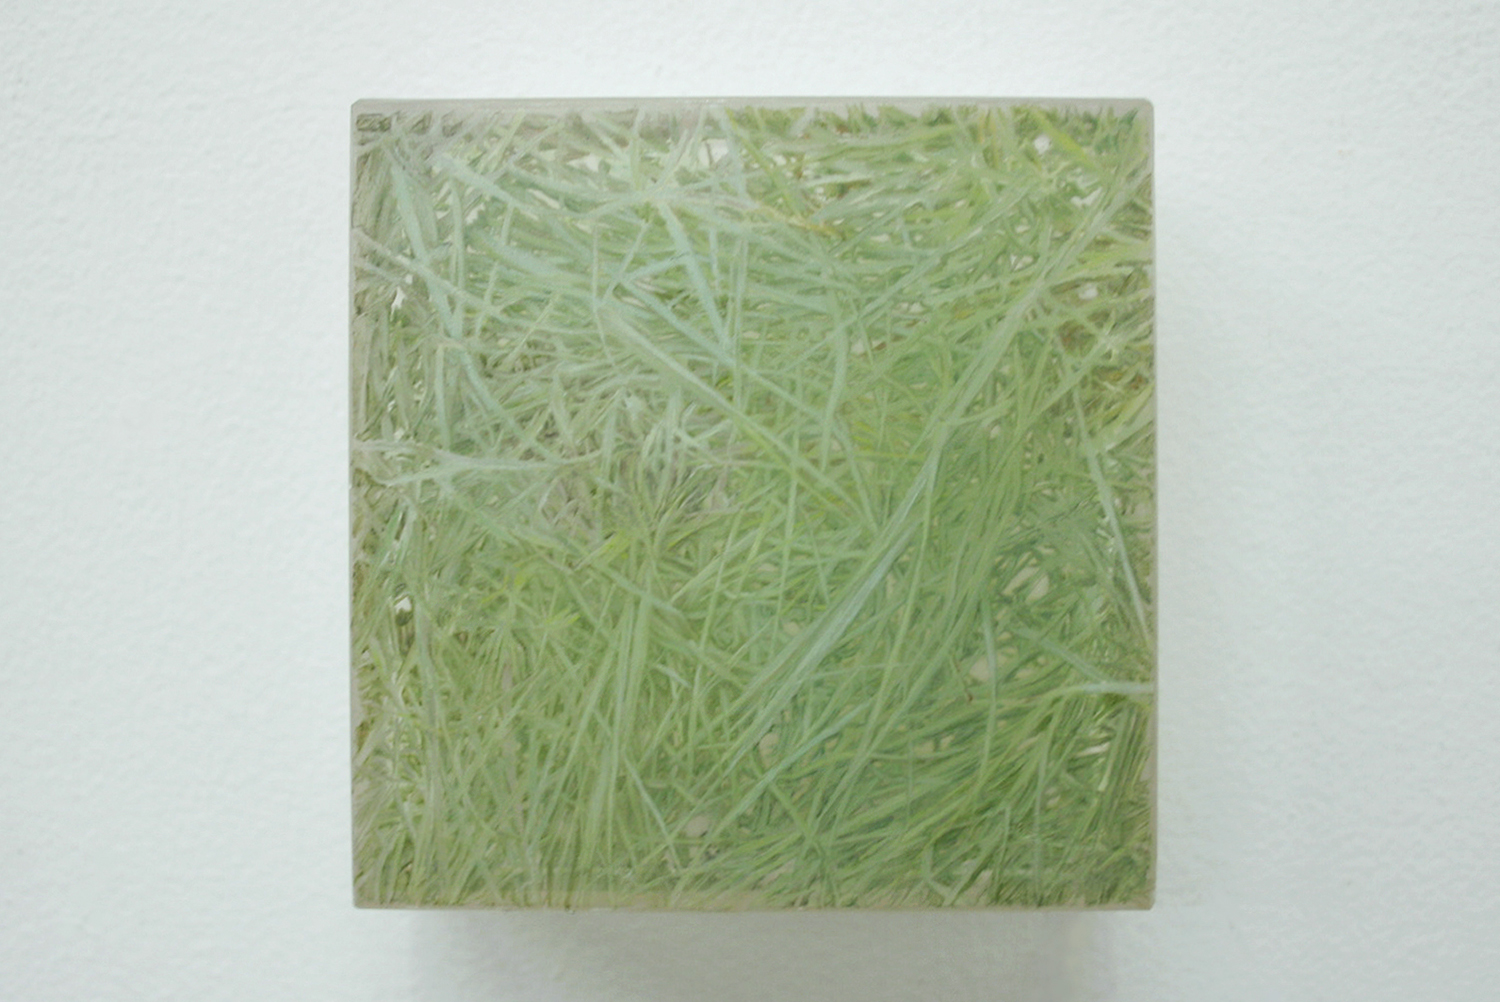 Photo-painting 草上のかおり-8|Scent on the grass-8 |7.5 x 7.5 x 3 cm|Oil on FRP, mixed media| 2009